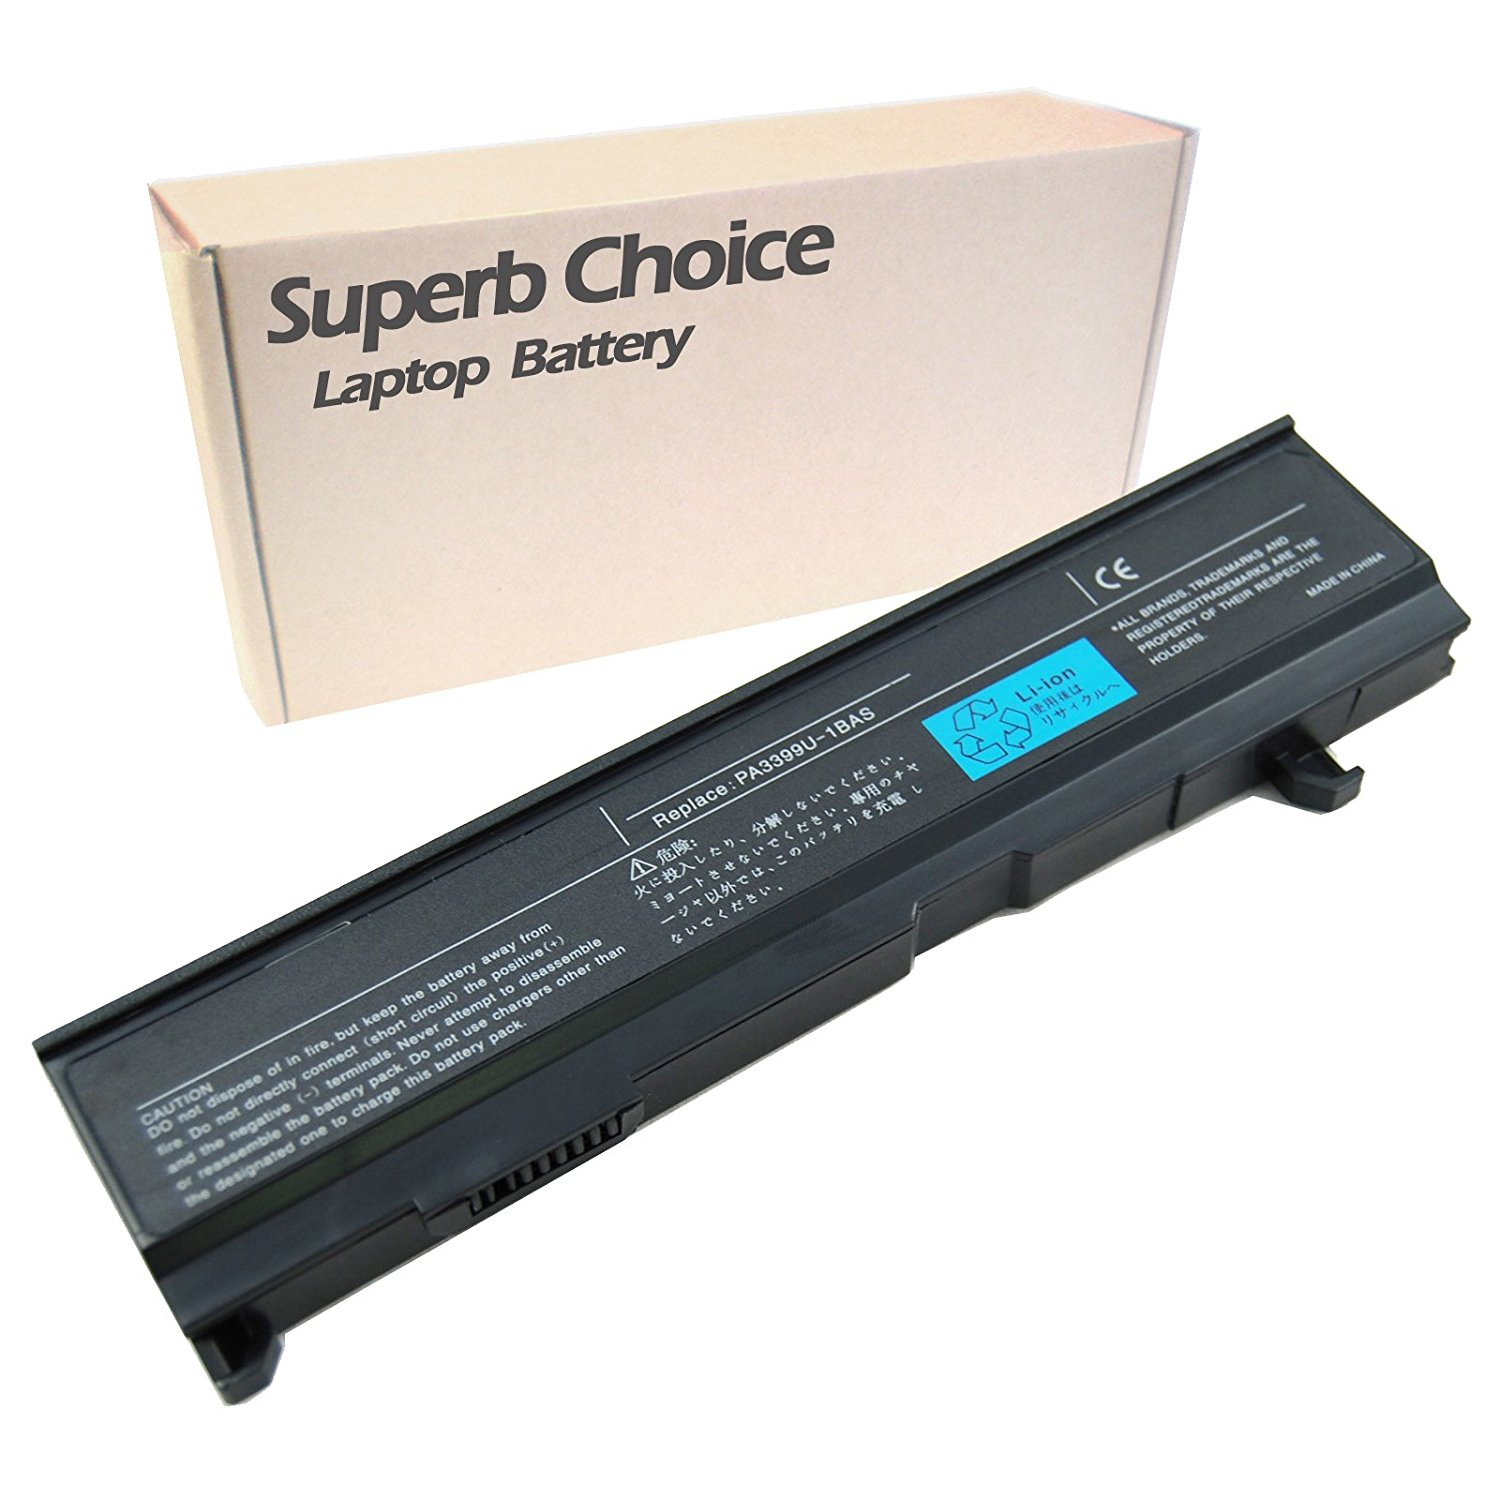 Toshiba PA3399U-2BRS Primary Li-Ion Laptop Battery Laptop Battery - Premium Superb Choice® 6-cell Li-ion battery